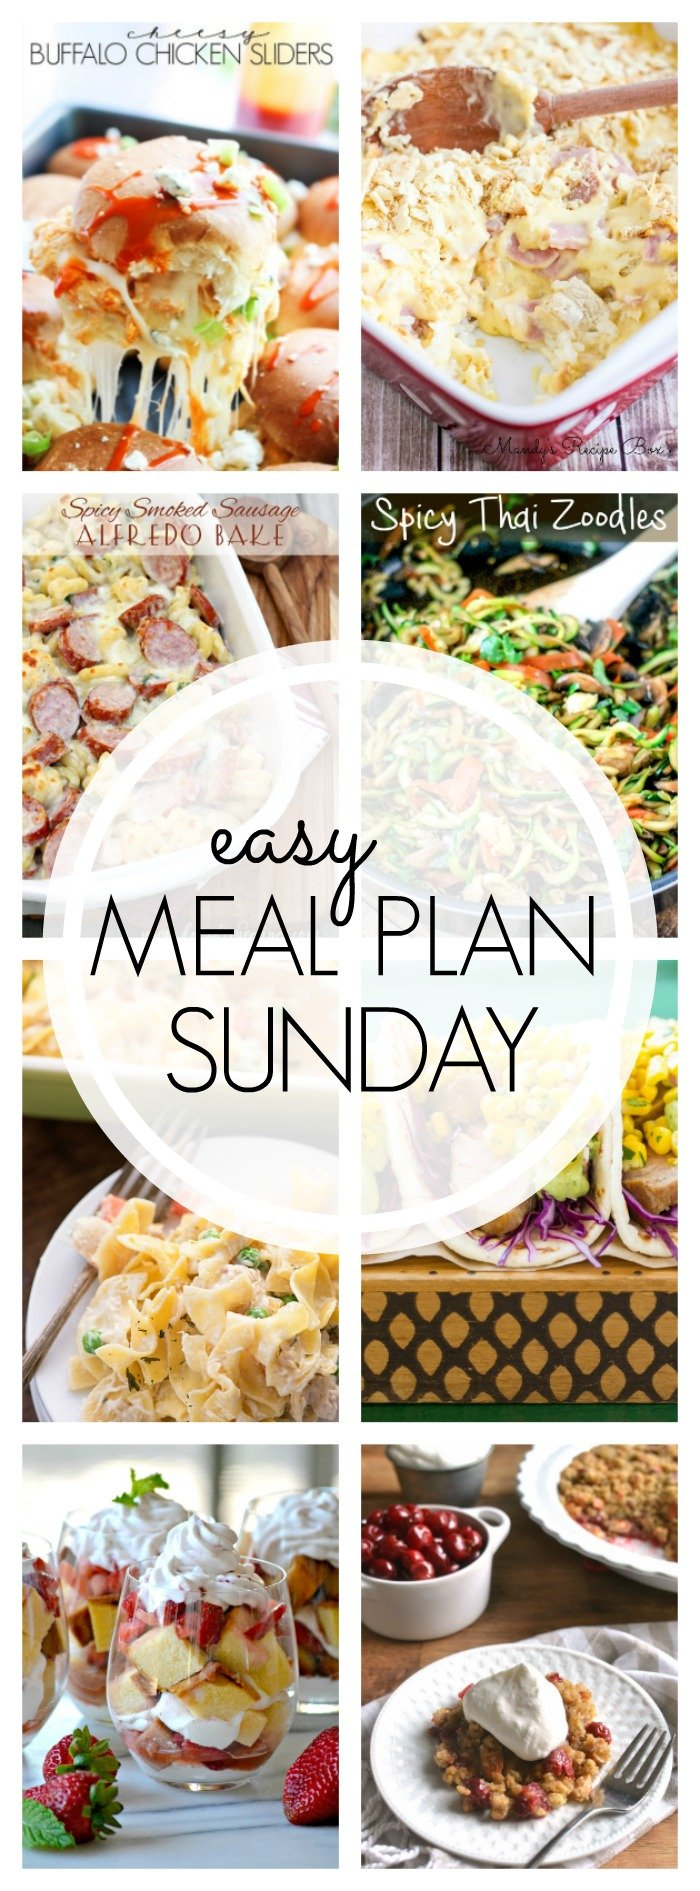 EASY MEAL PLAN – Week 56 - 7 delicious dinners and 2 desserts!